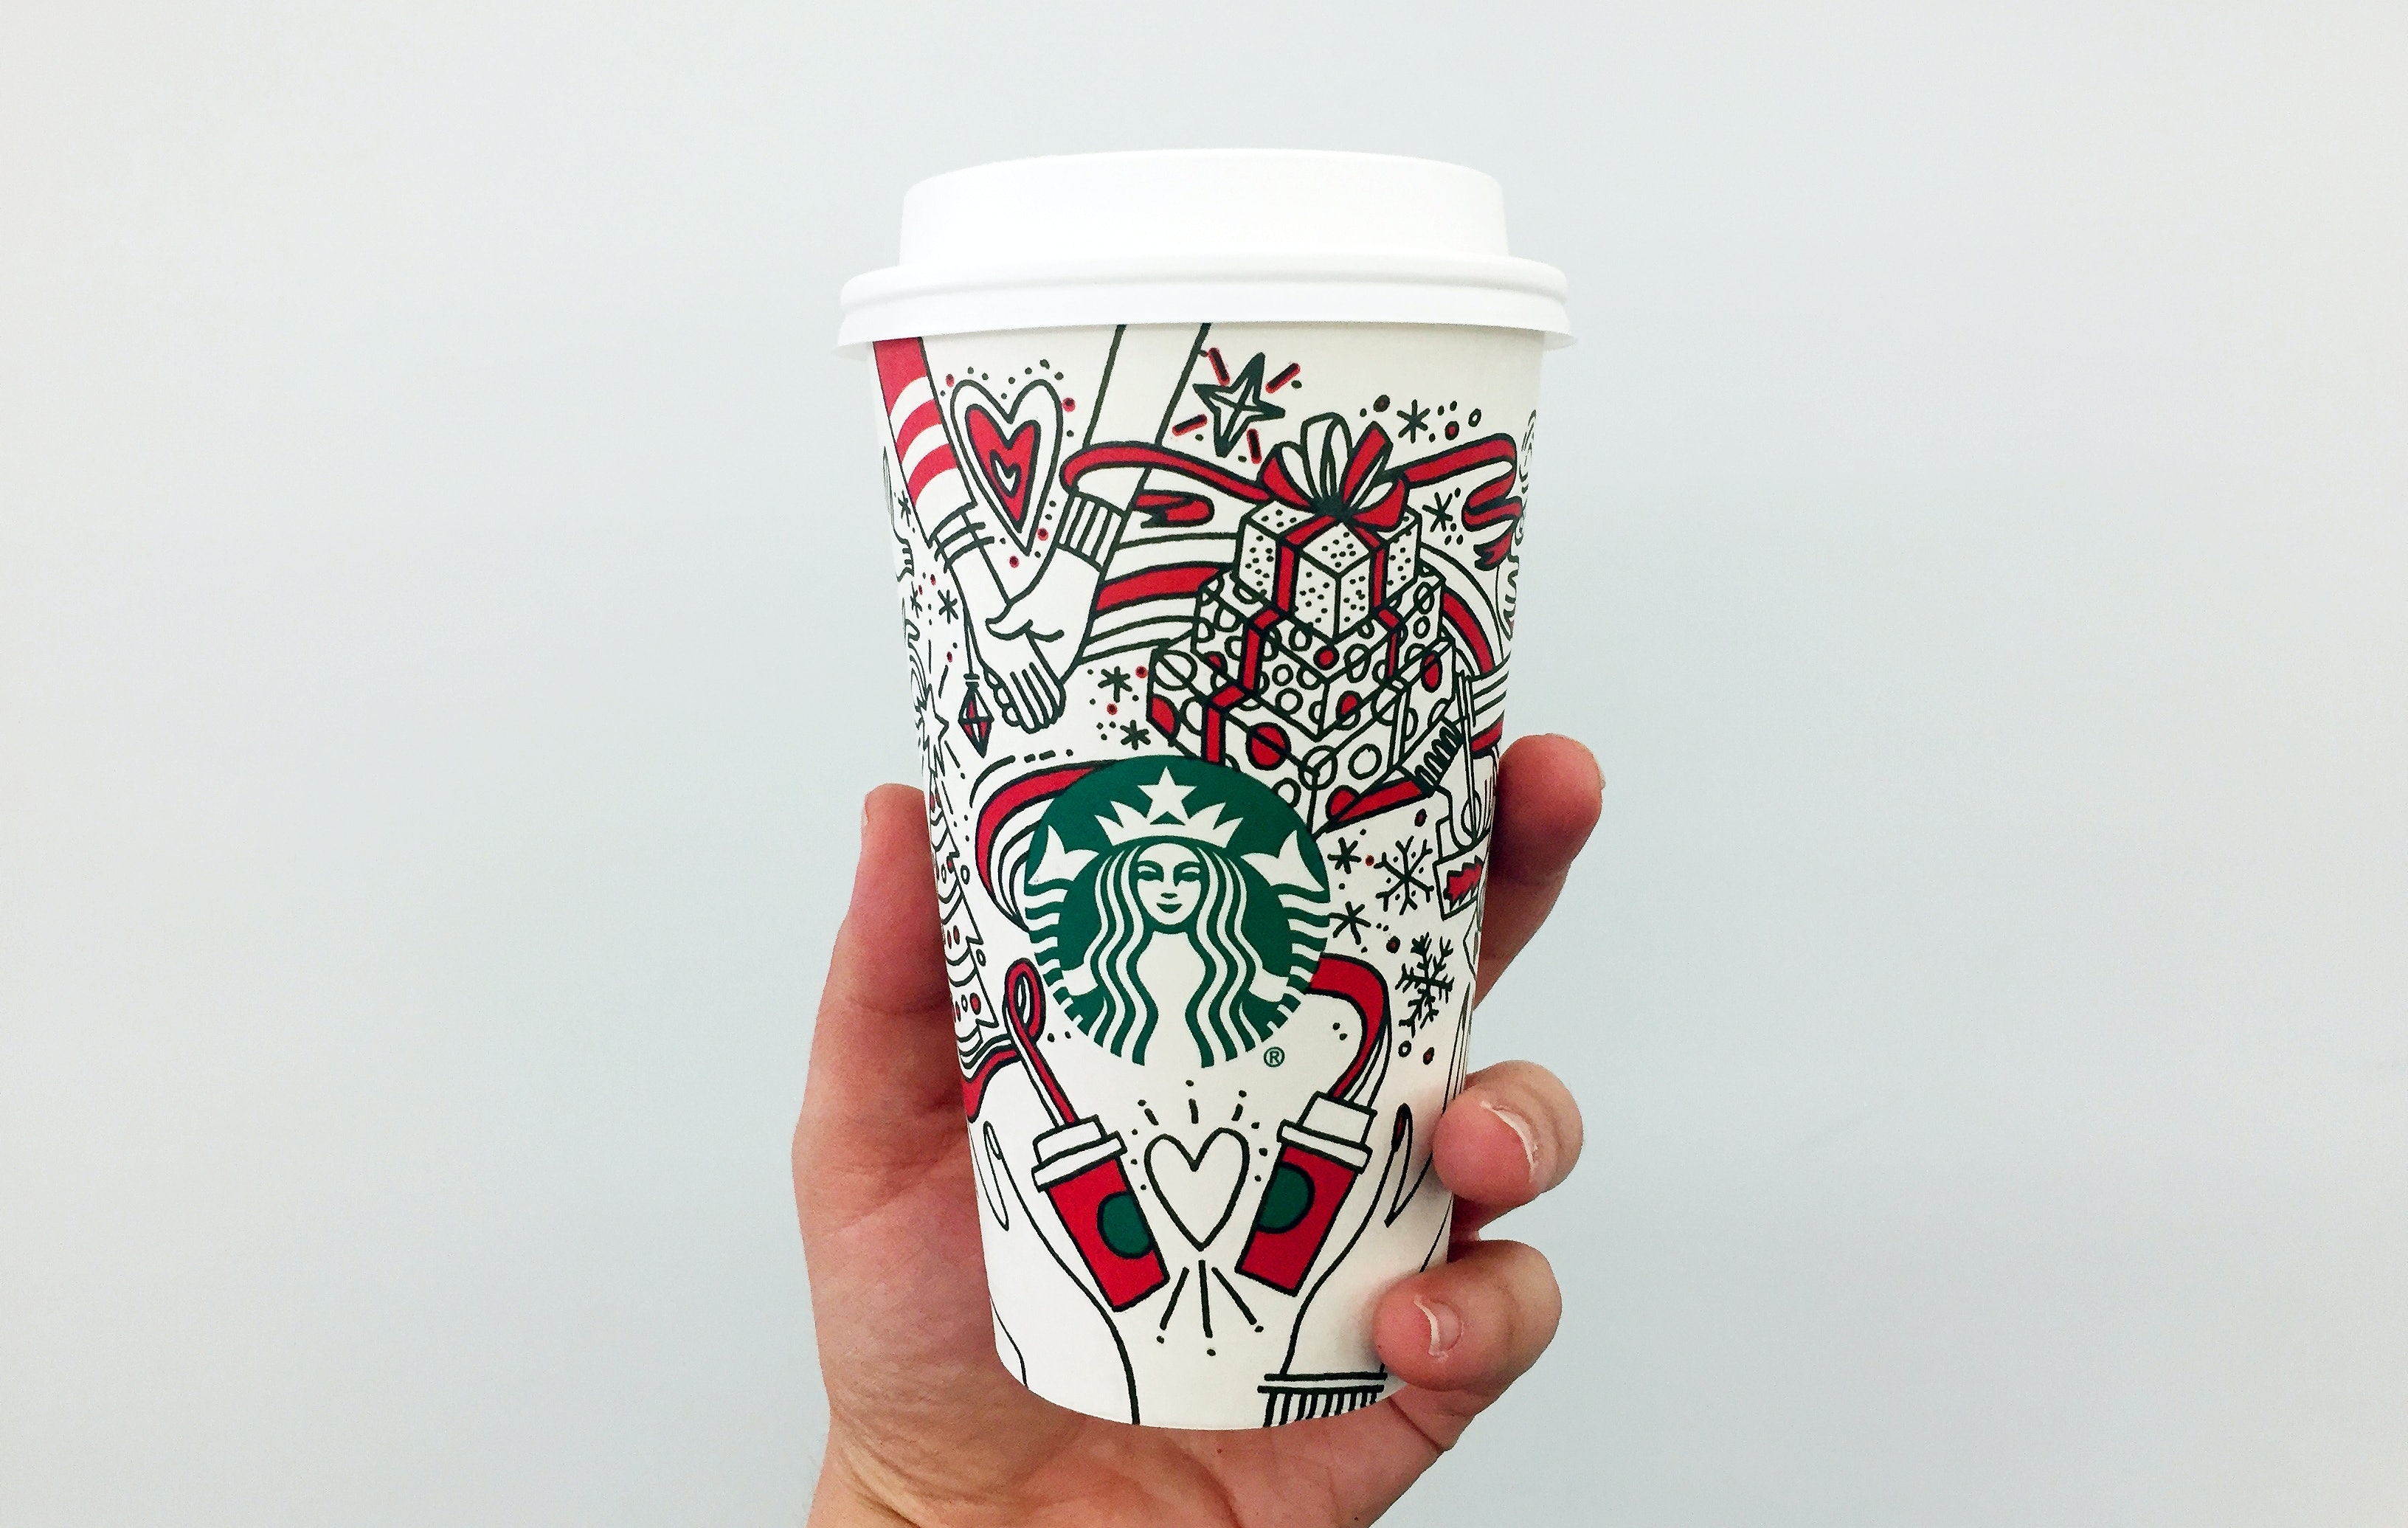 Starbucks' new 'Give Good' holiday cup invites customers to color it in